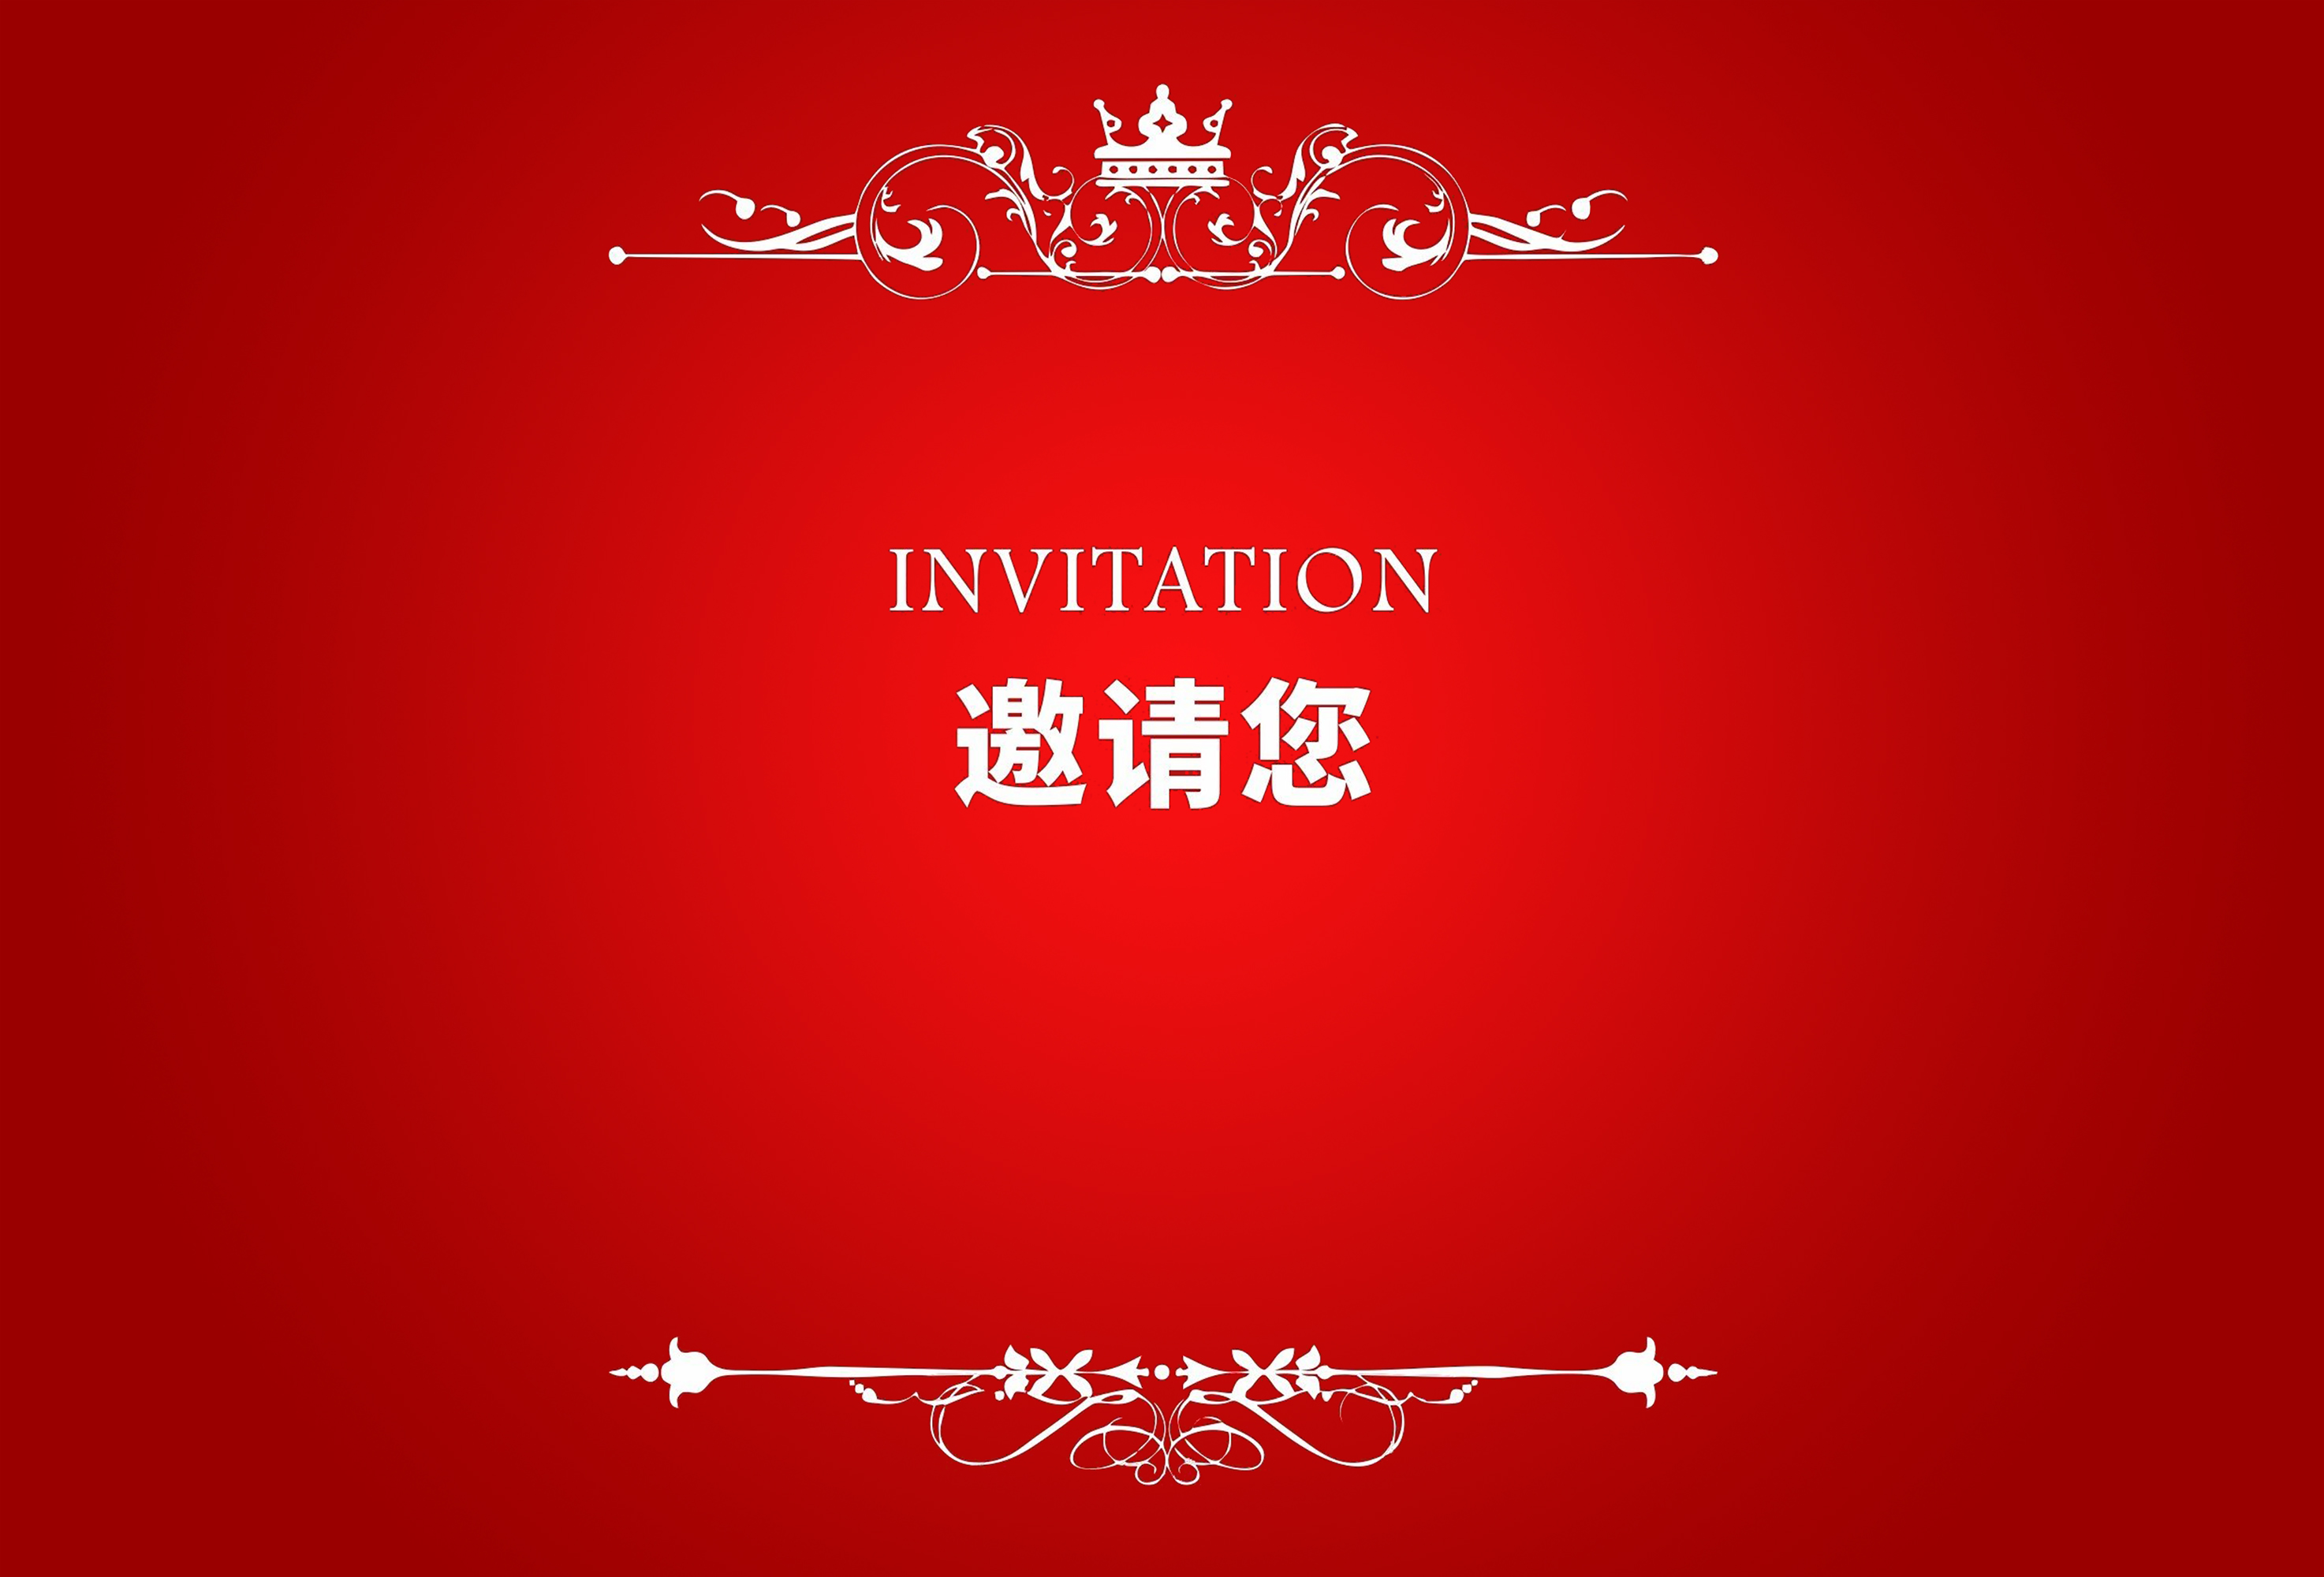 Western Red Concert Invitation, Red, Western, Music Background Image ...